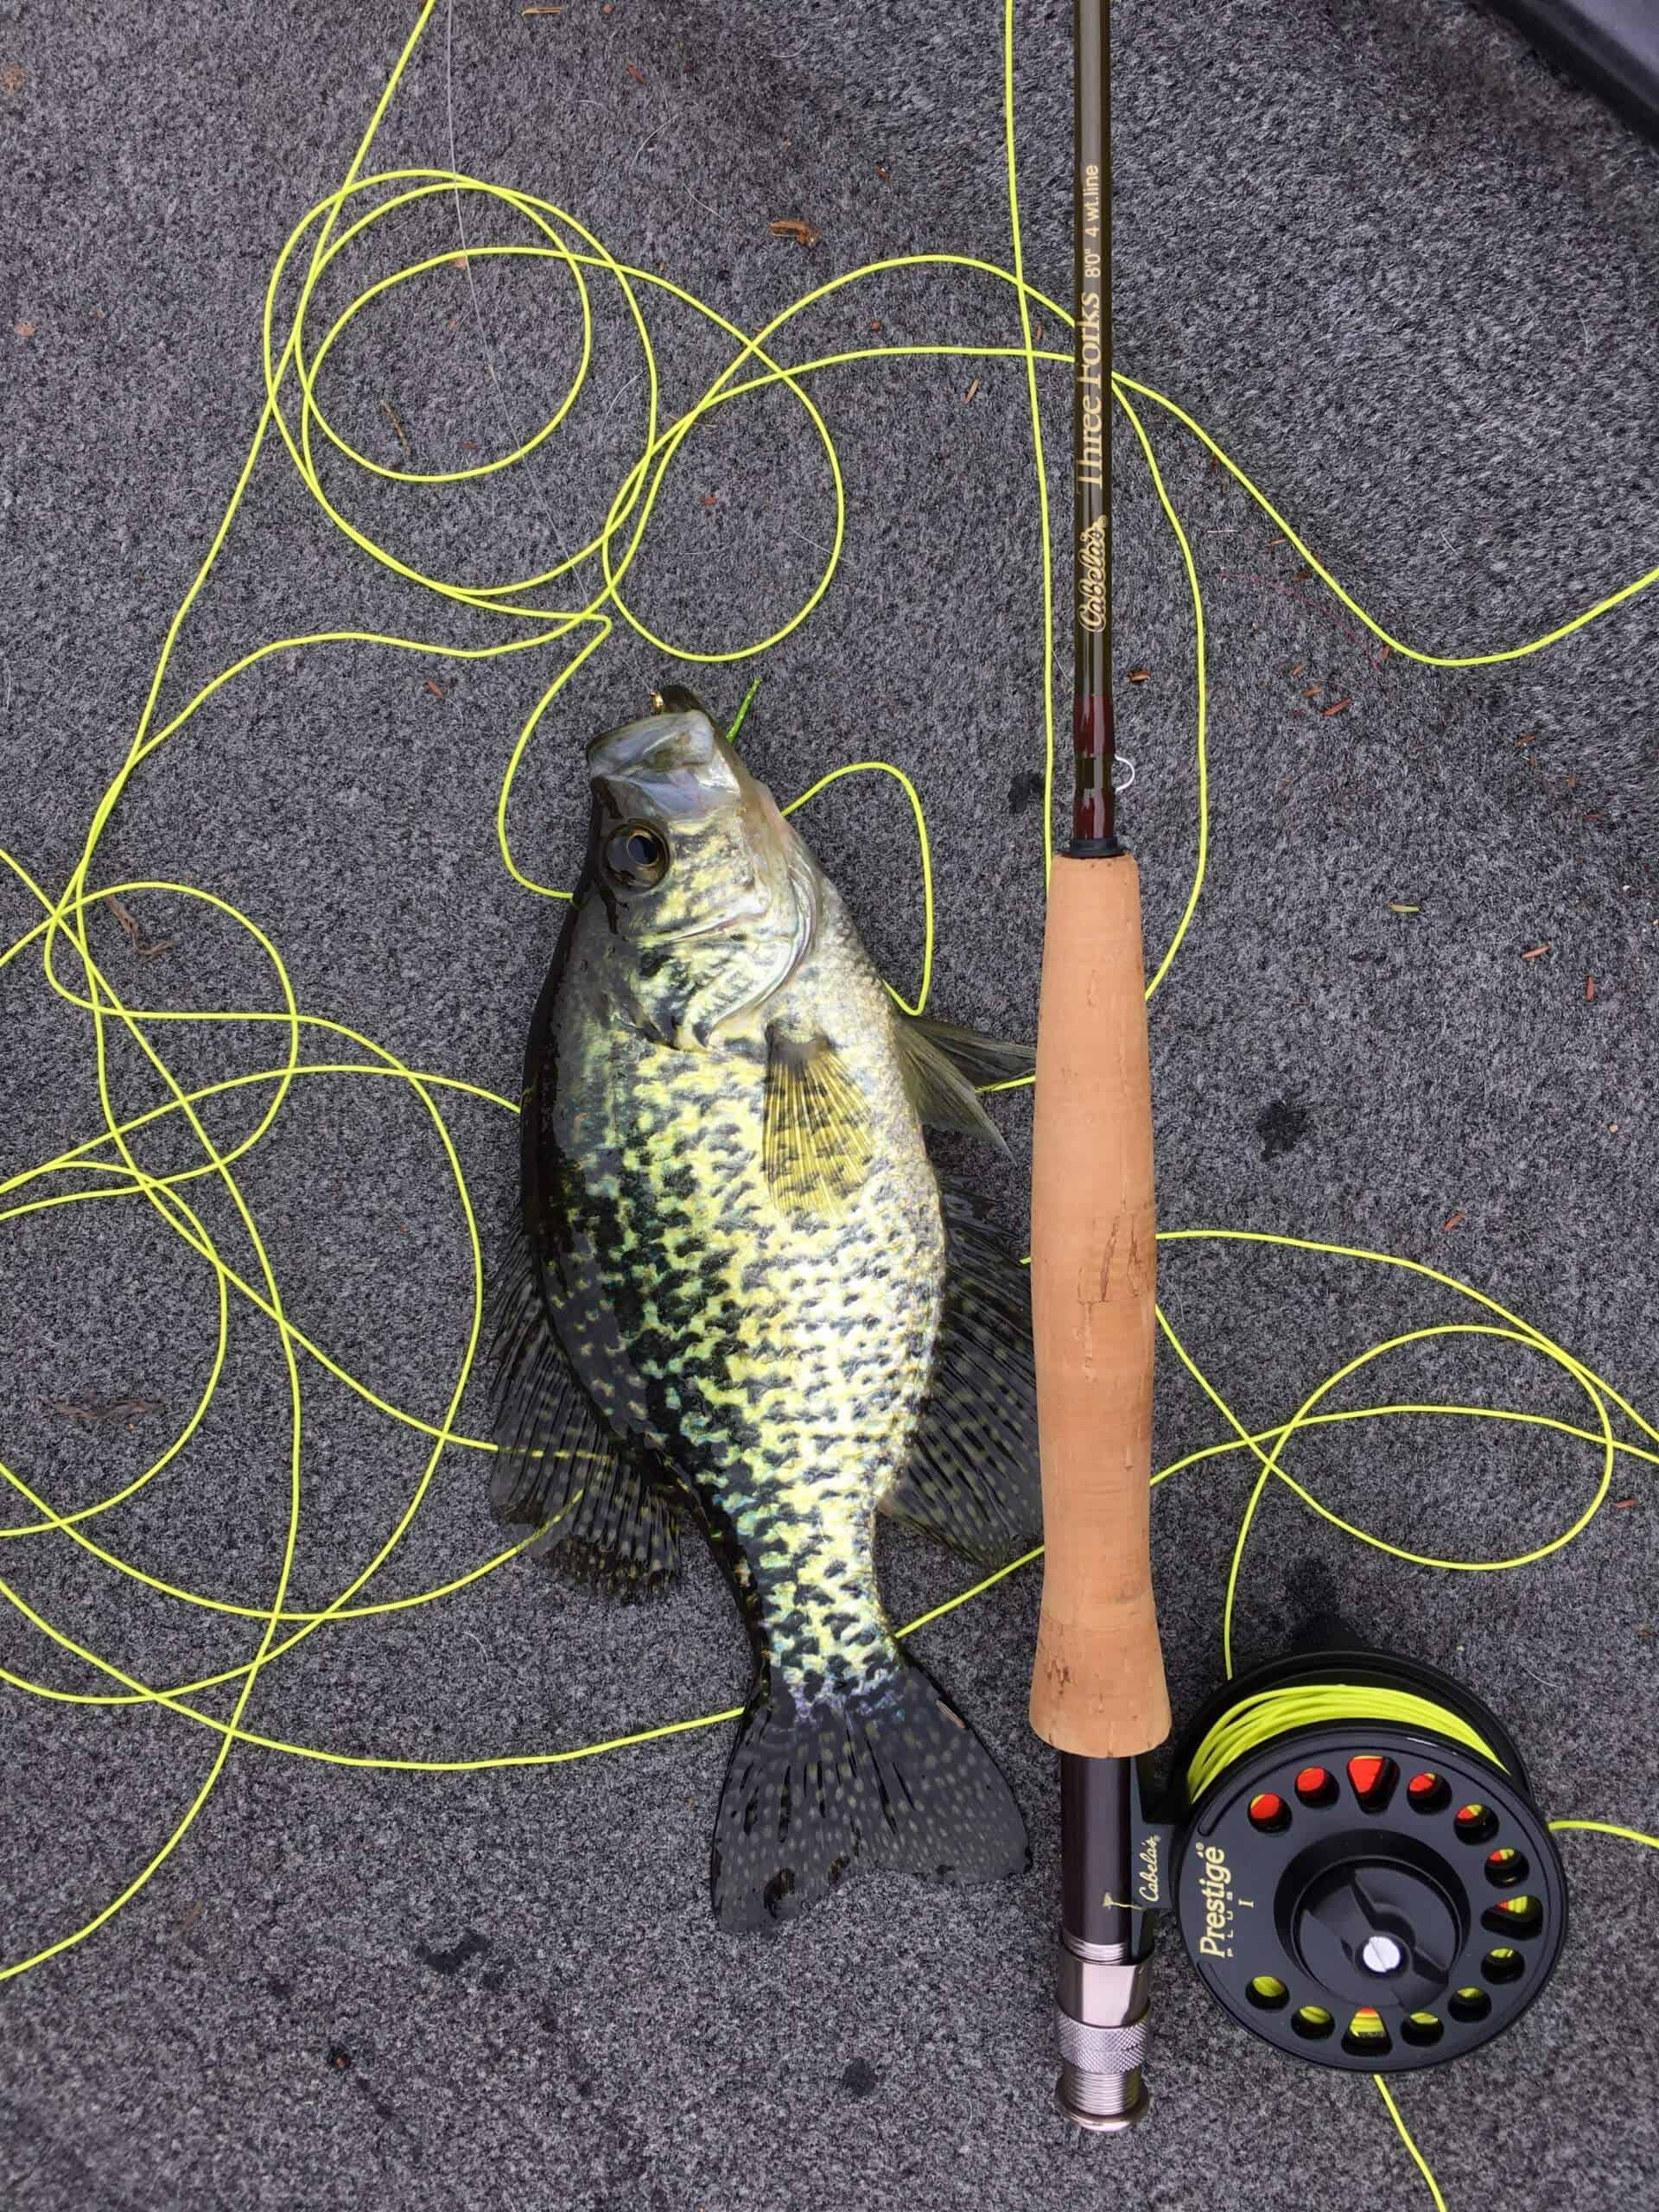 Crappie lying on ground next to best crappie fishing rod and reel